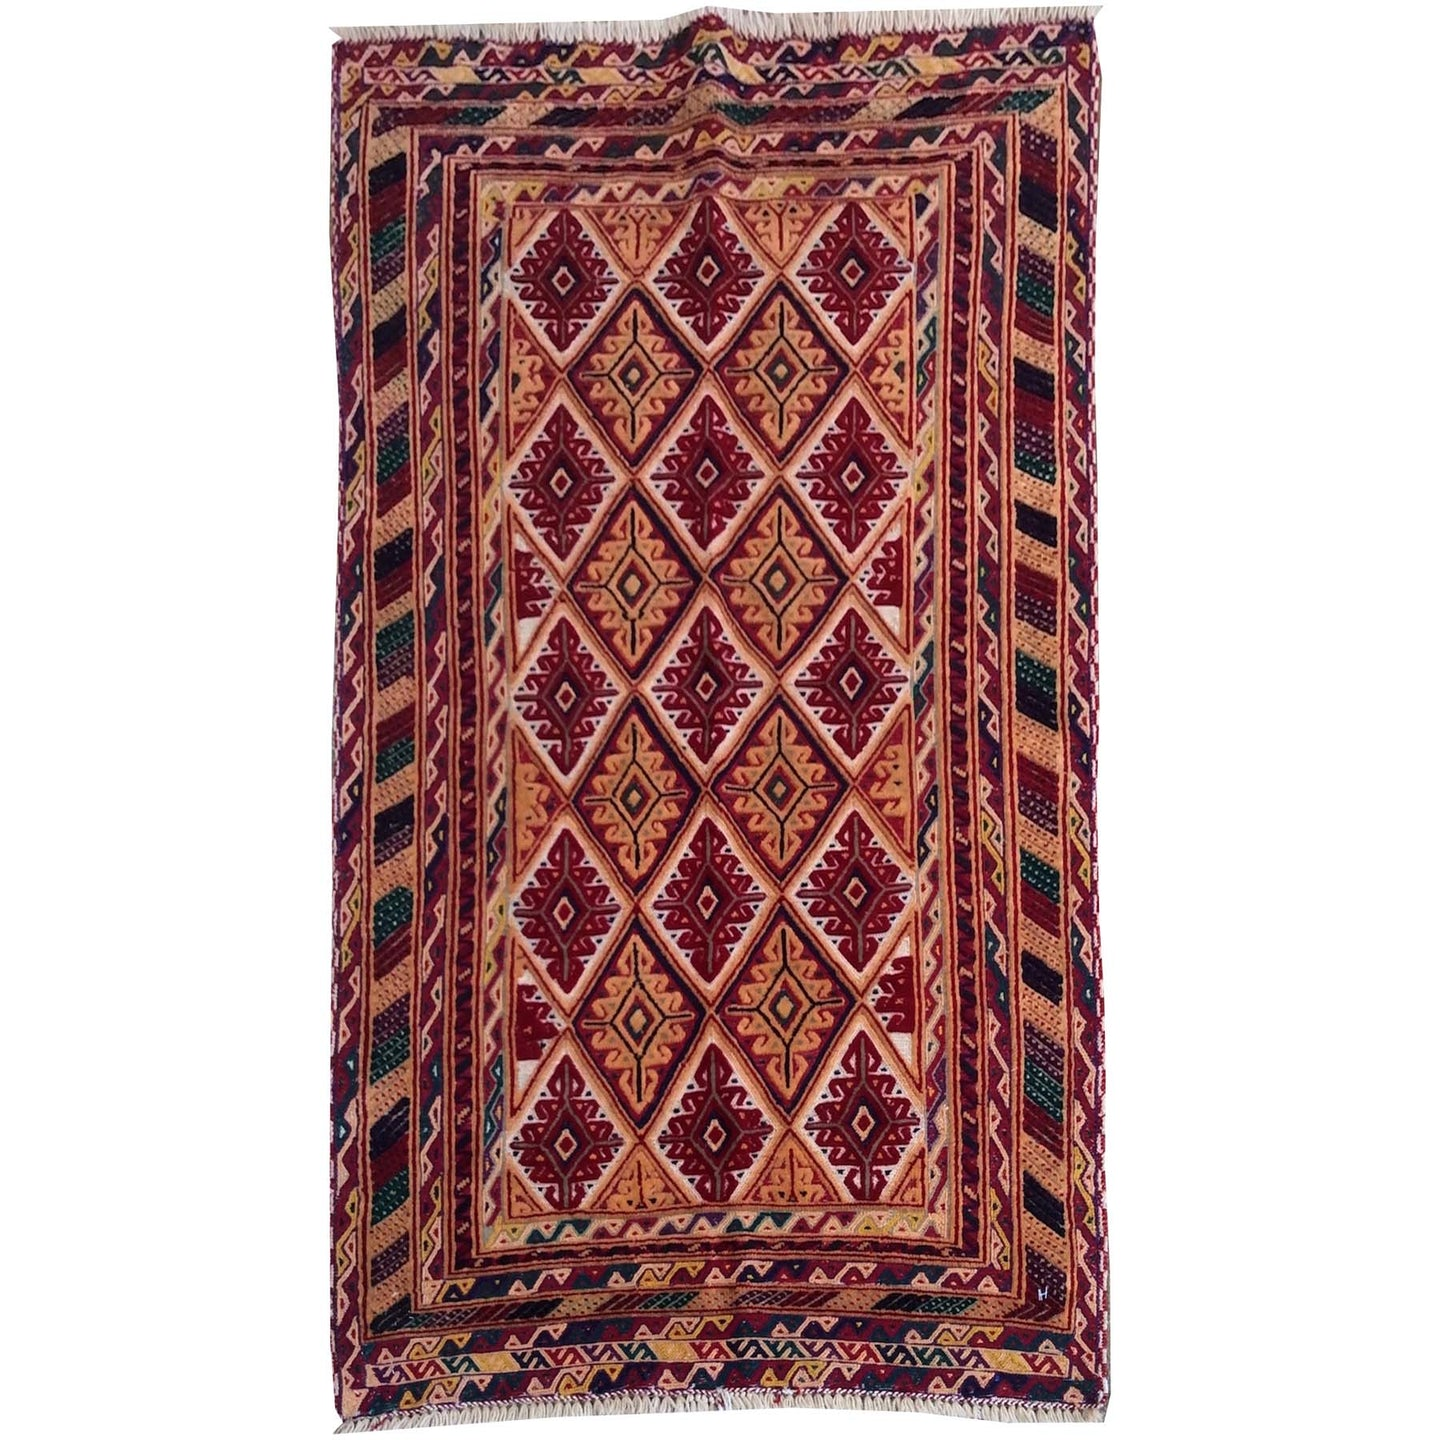 Oriental rugs, hand-knotted carpets, sustainable rugs, classic world oriental rugs, handmade, United States, interior design,  Brrsf-897